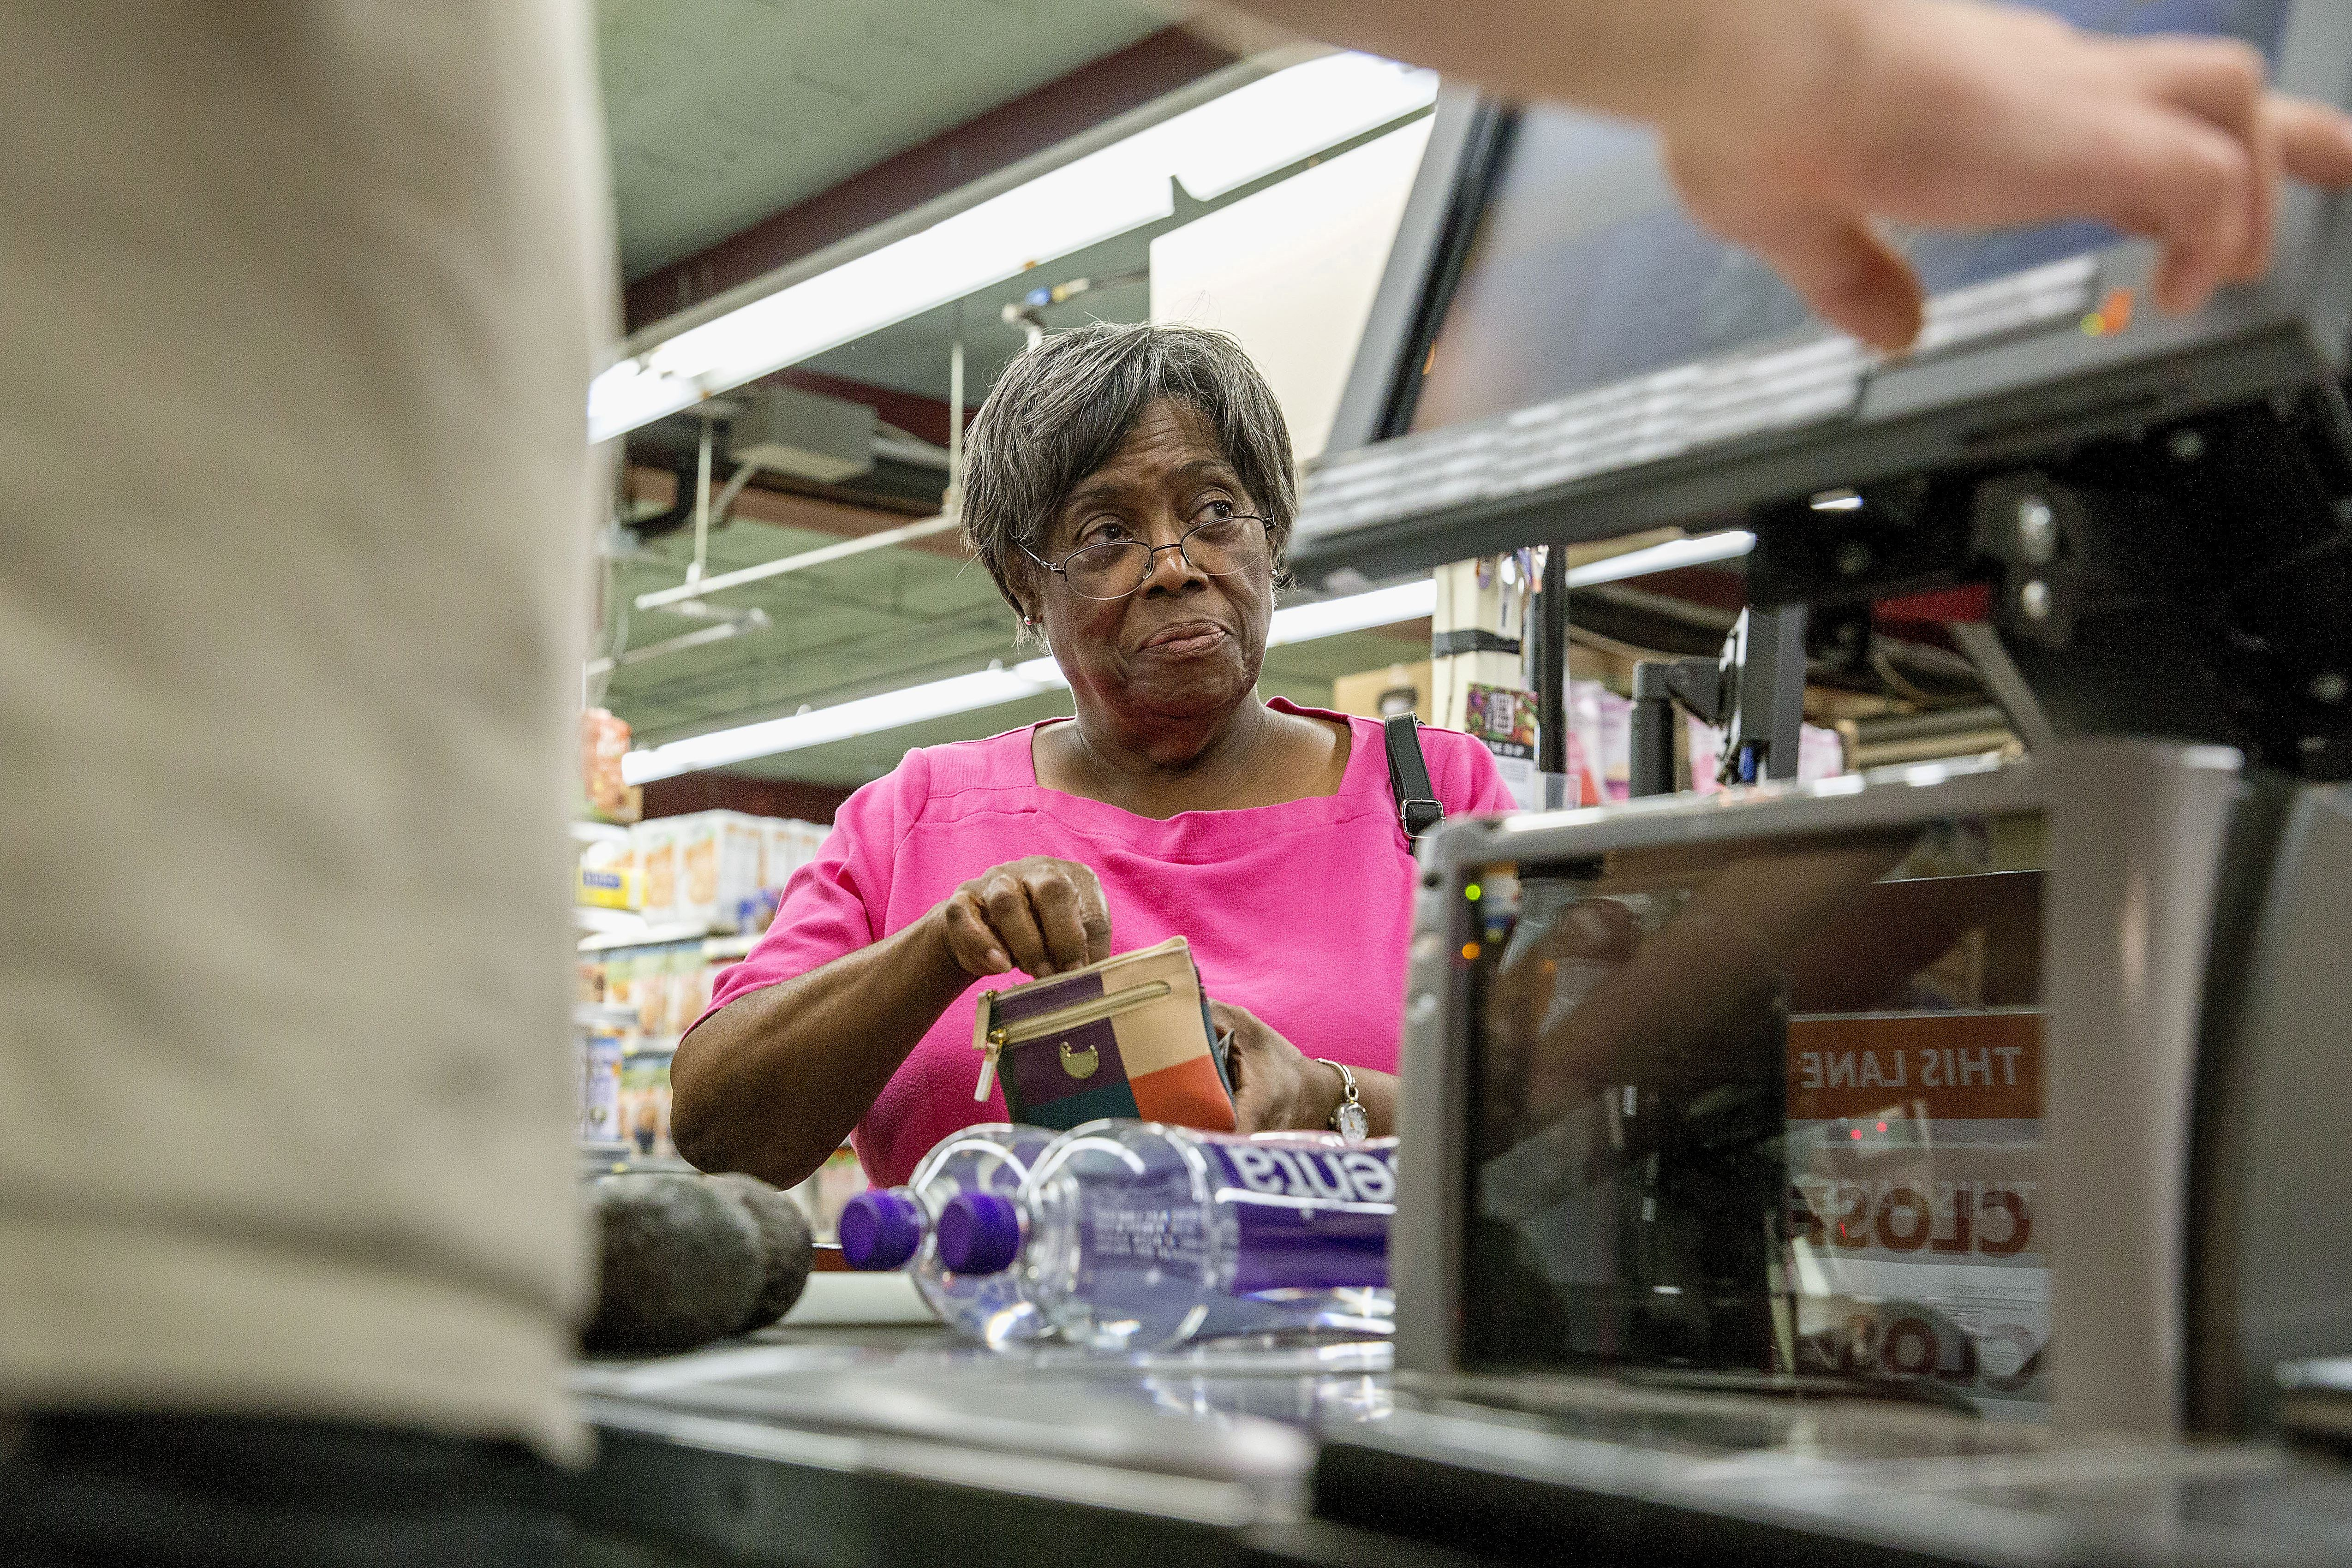 20170802acFoodCo-Op01.jpg Marian Lewis of Verona buys avocados and bottles of water at the East End Food Co-op in Point Breeze.